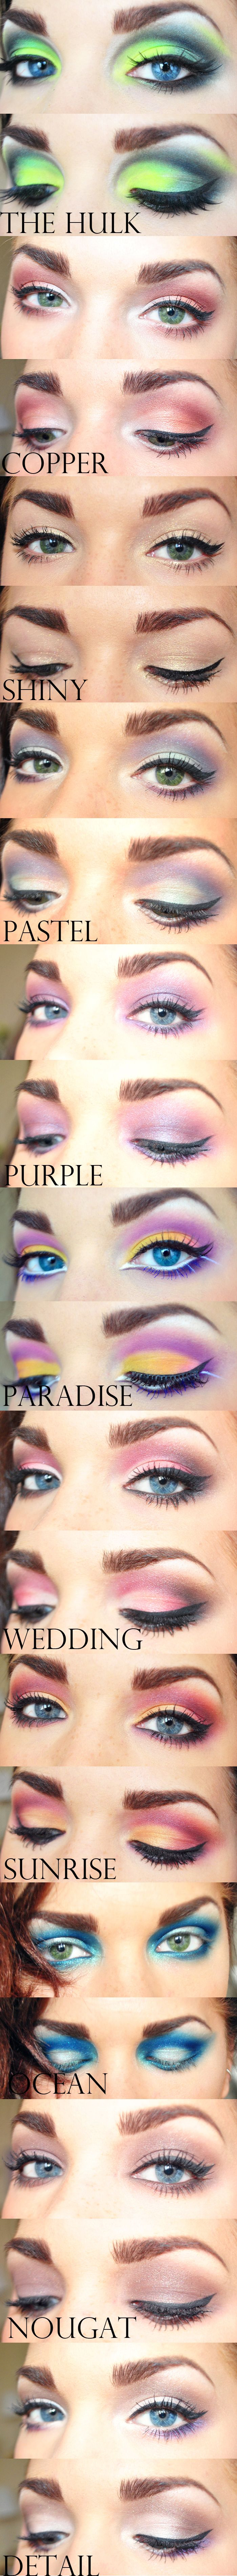 Amazing makeup looks using Younique eye pigment colors (amazing hulk is #1) to order chick out https://www.youniqueproducts.com/Danniescosmetics/business for more tips and info check out https://www.facebook.com/groups/614933658608859/